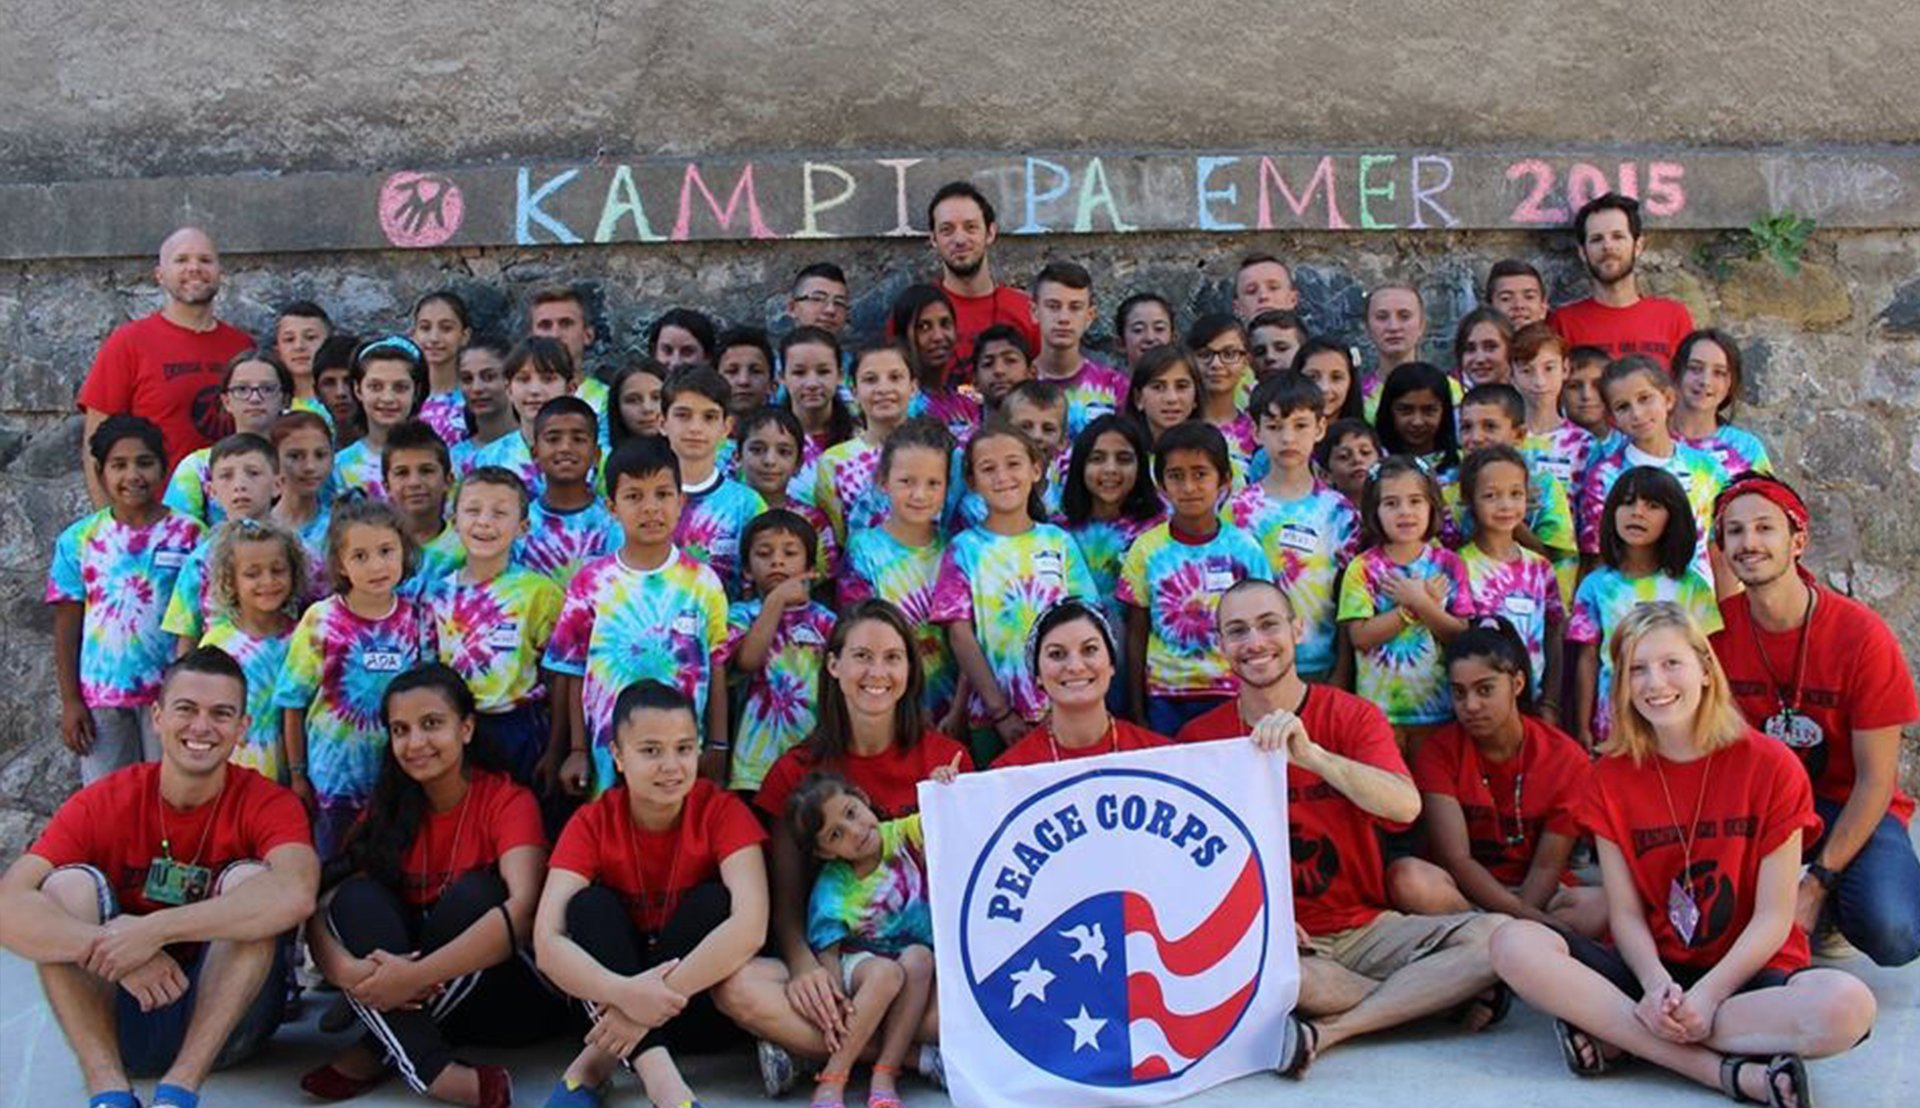 Rutgers Global – Peace Corps Professional Benefits, Jon Breen and other Peace Corps volunteers post with children at a youth center in Albania